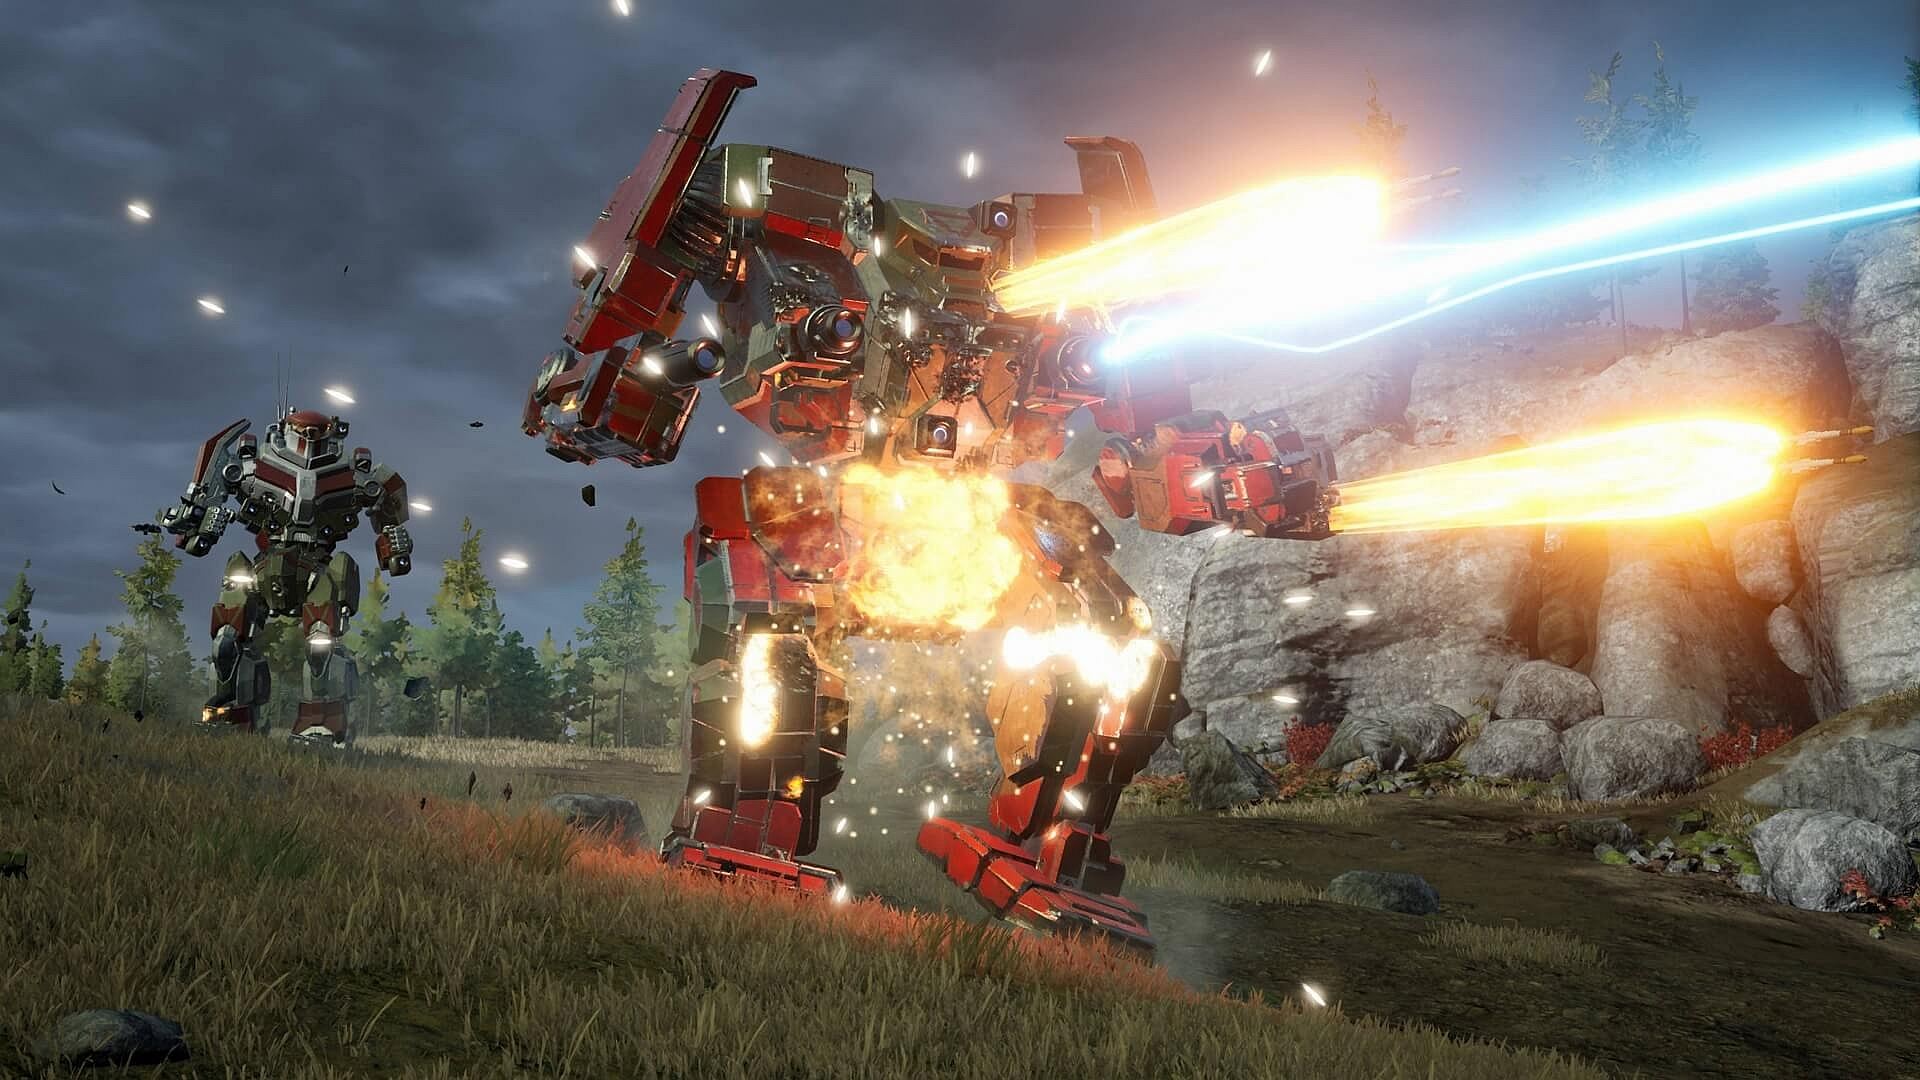 Game Ready driver MechWarrior 5